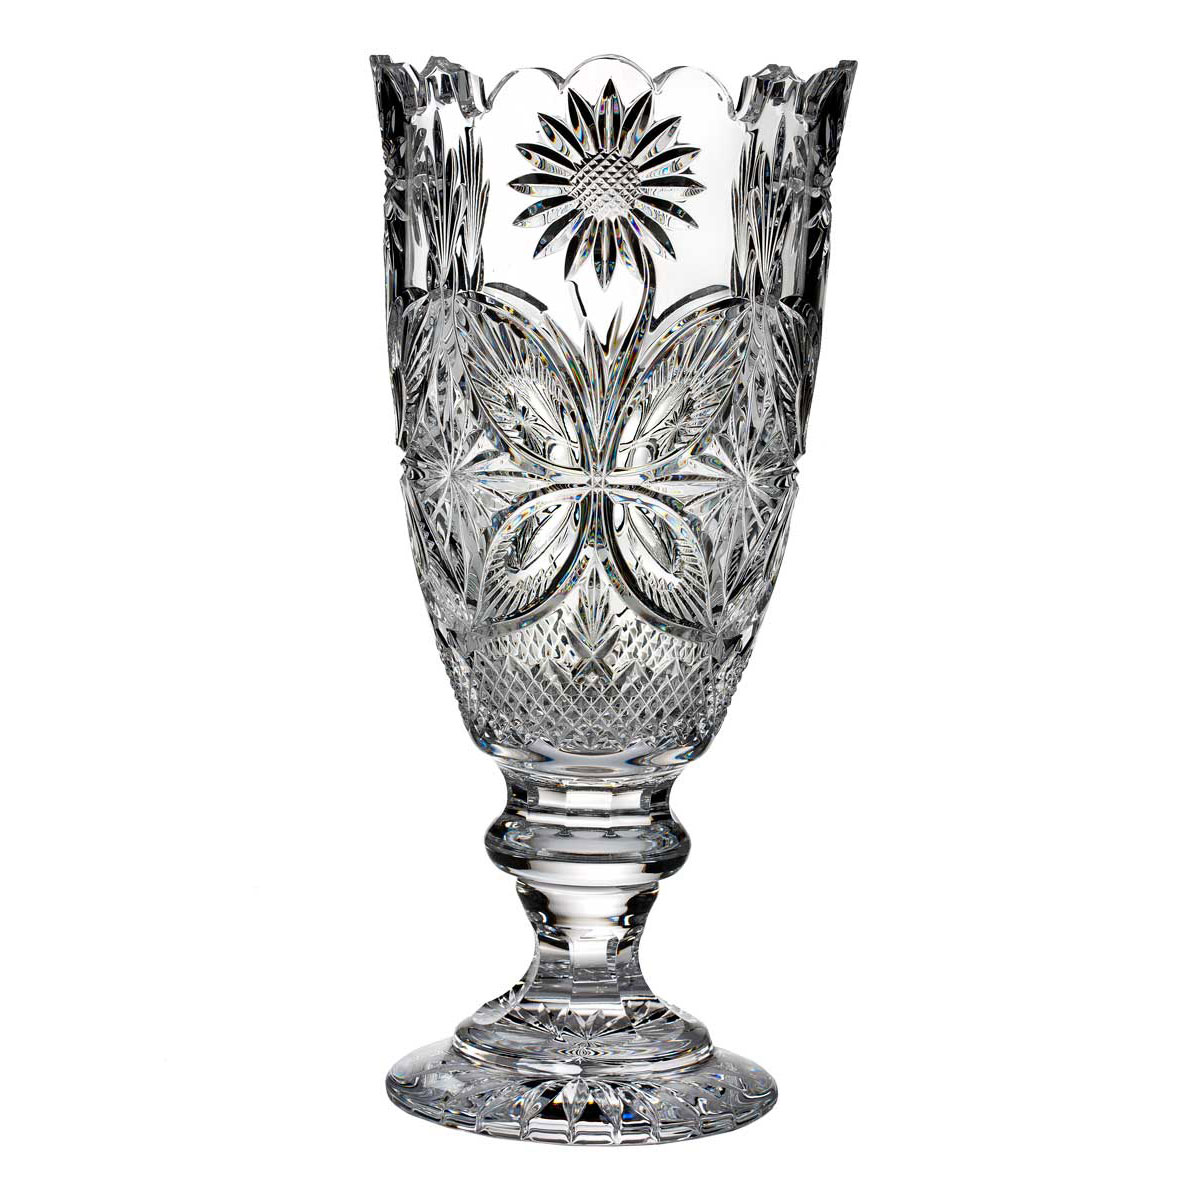 "Waterford Crystal, House of Waterford Mt. Congreve 18"" Summer Crystal Vase, Limited Edition of 250"